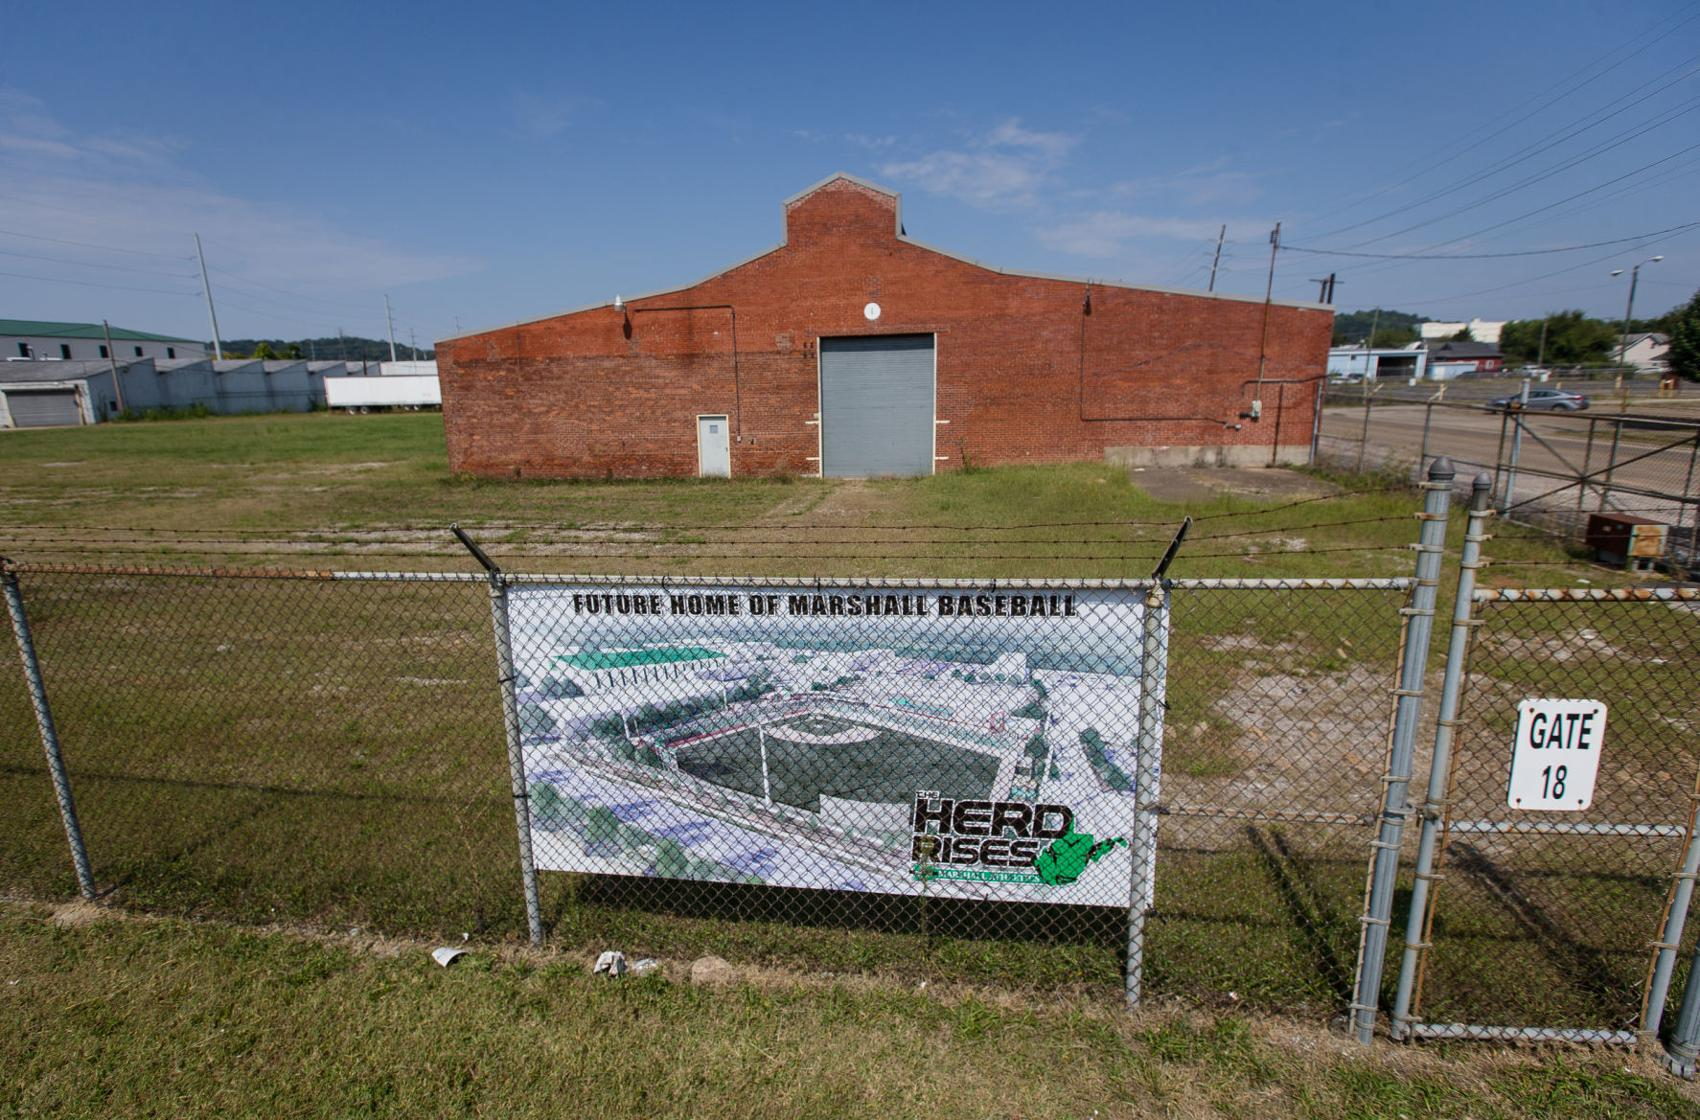 A sign at the former plant advertises the site of the future Marshall baseball stadium